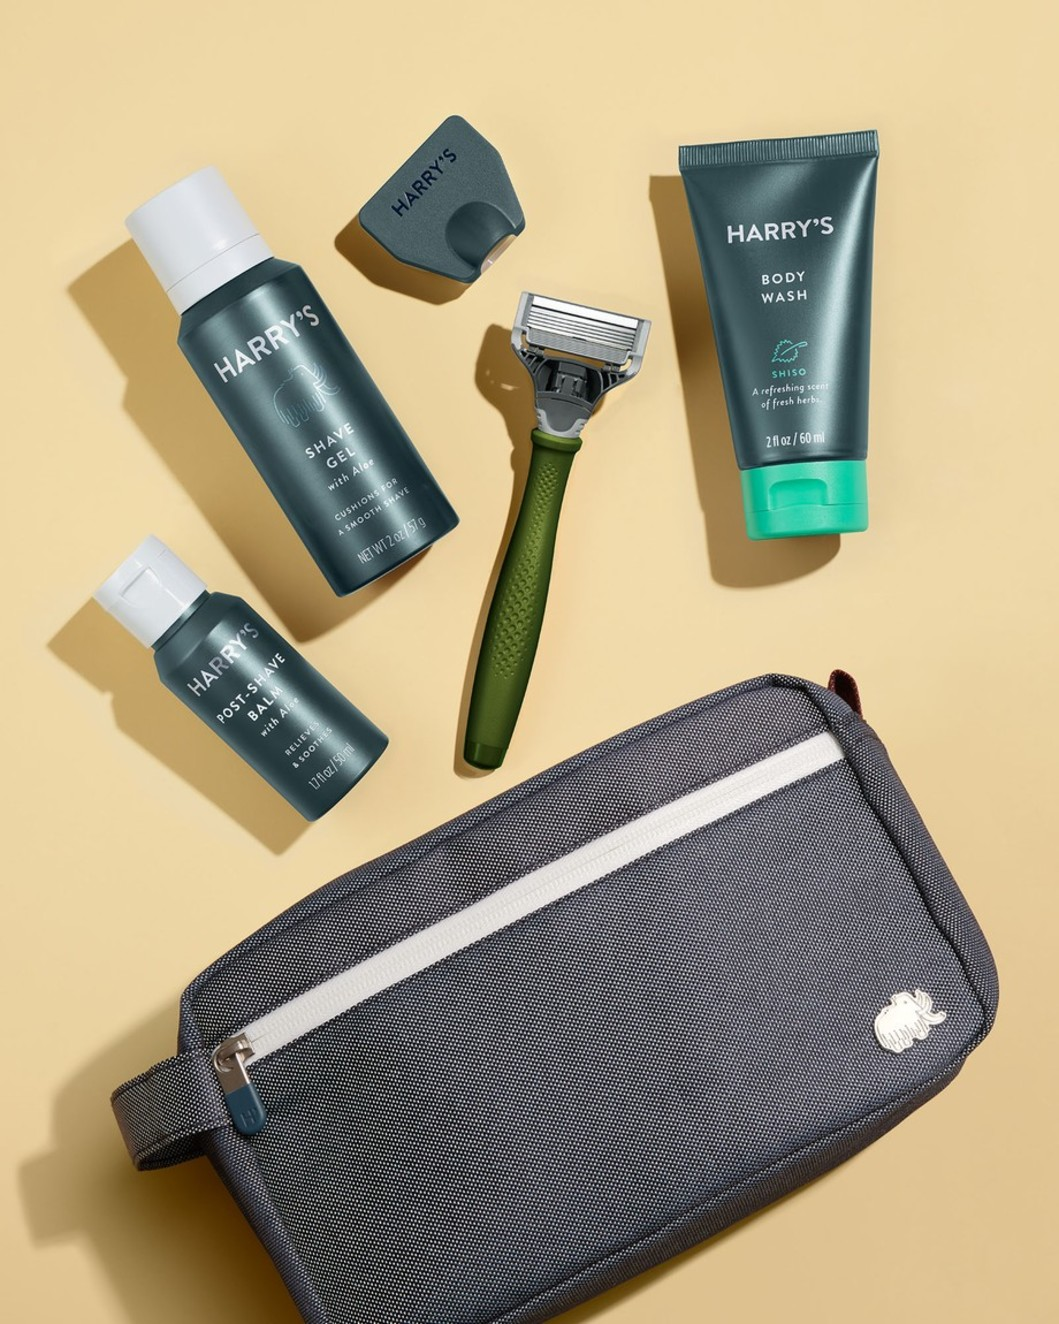 Deluxe Travel Kit - Olive Handle, Shiso Body Wash